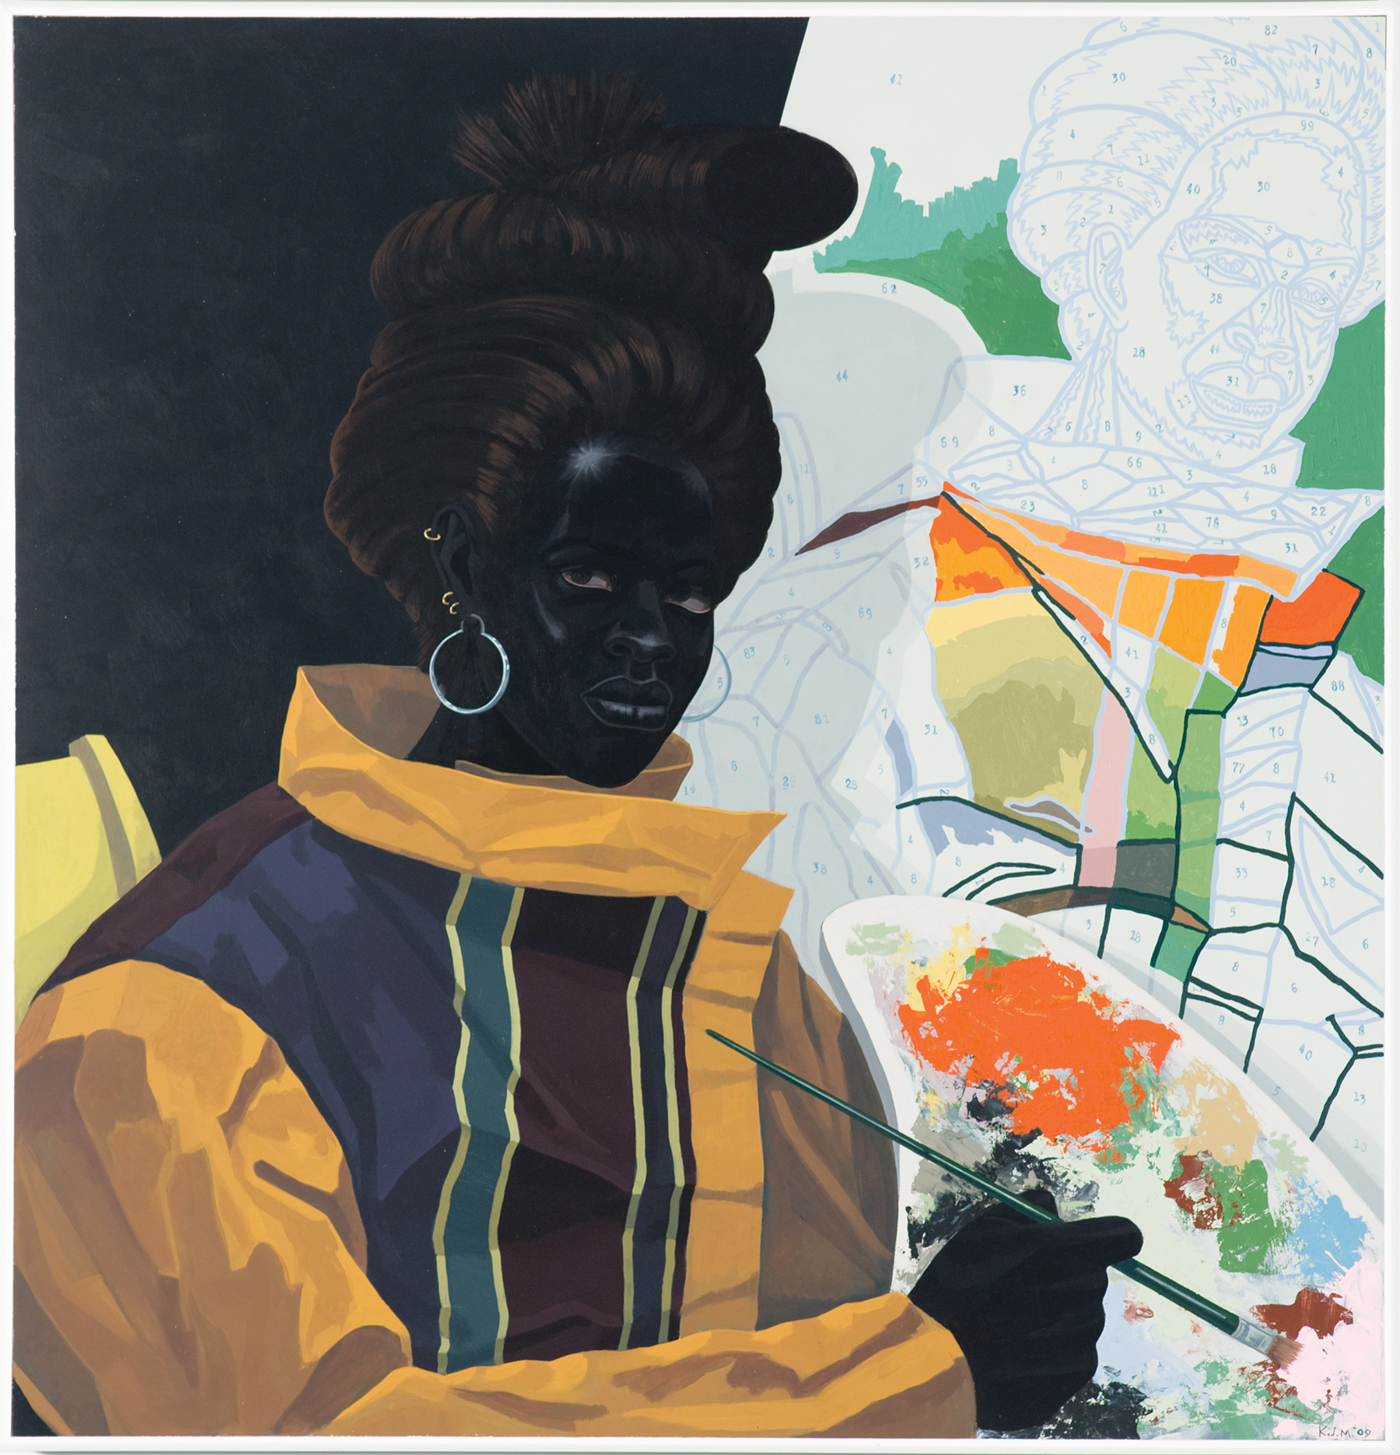 Kerry James Marshall, Untitled (Painter), 2009. Acrylic on PVC, 44 5/8 x 43 1/8 x 3 7/8 in., collection of the Museum of Contemporary Art Chicago, gift of Katherine S. Schamberg by exchange, photo by Nathan Keay, © MCA Chicago.